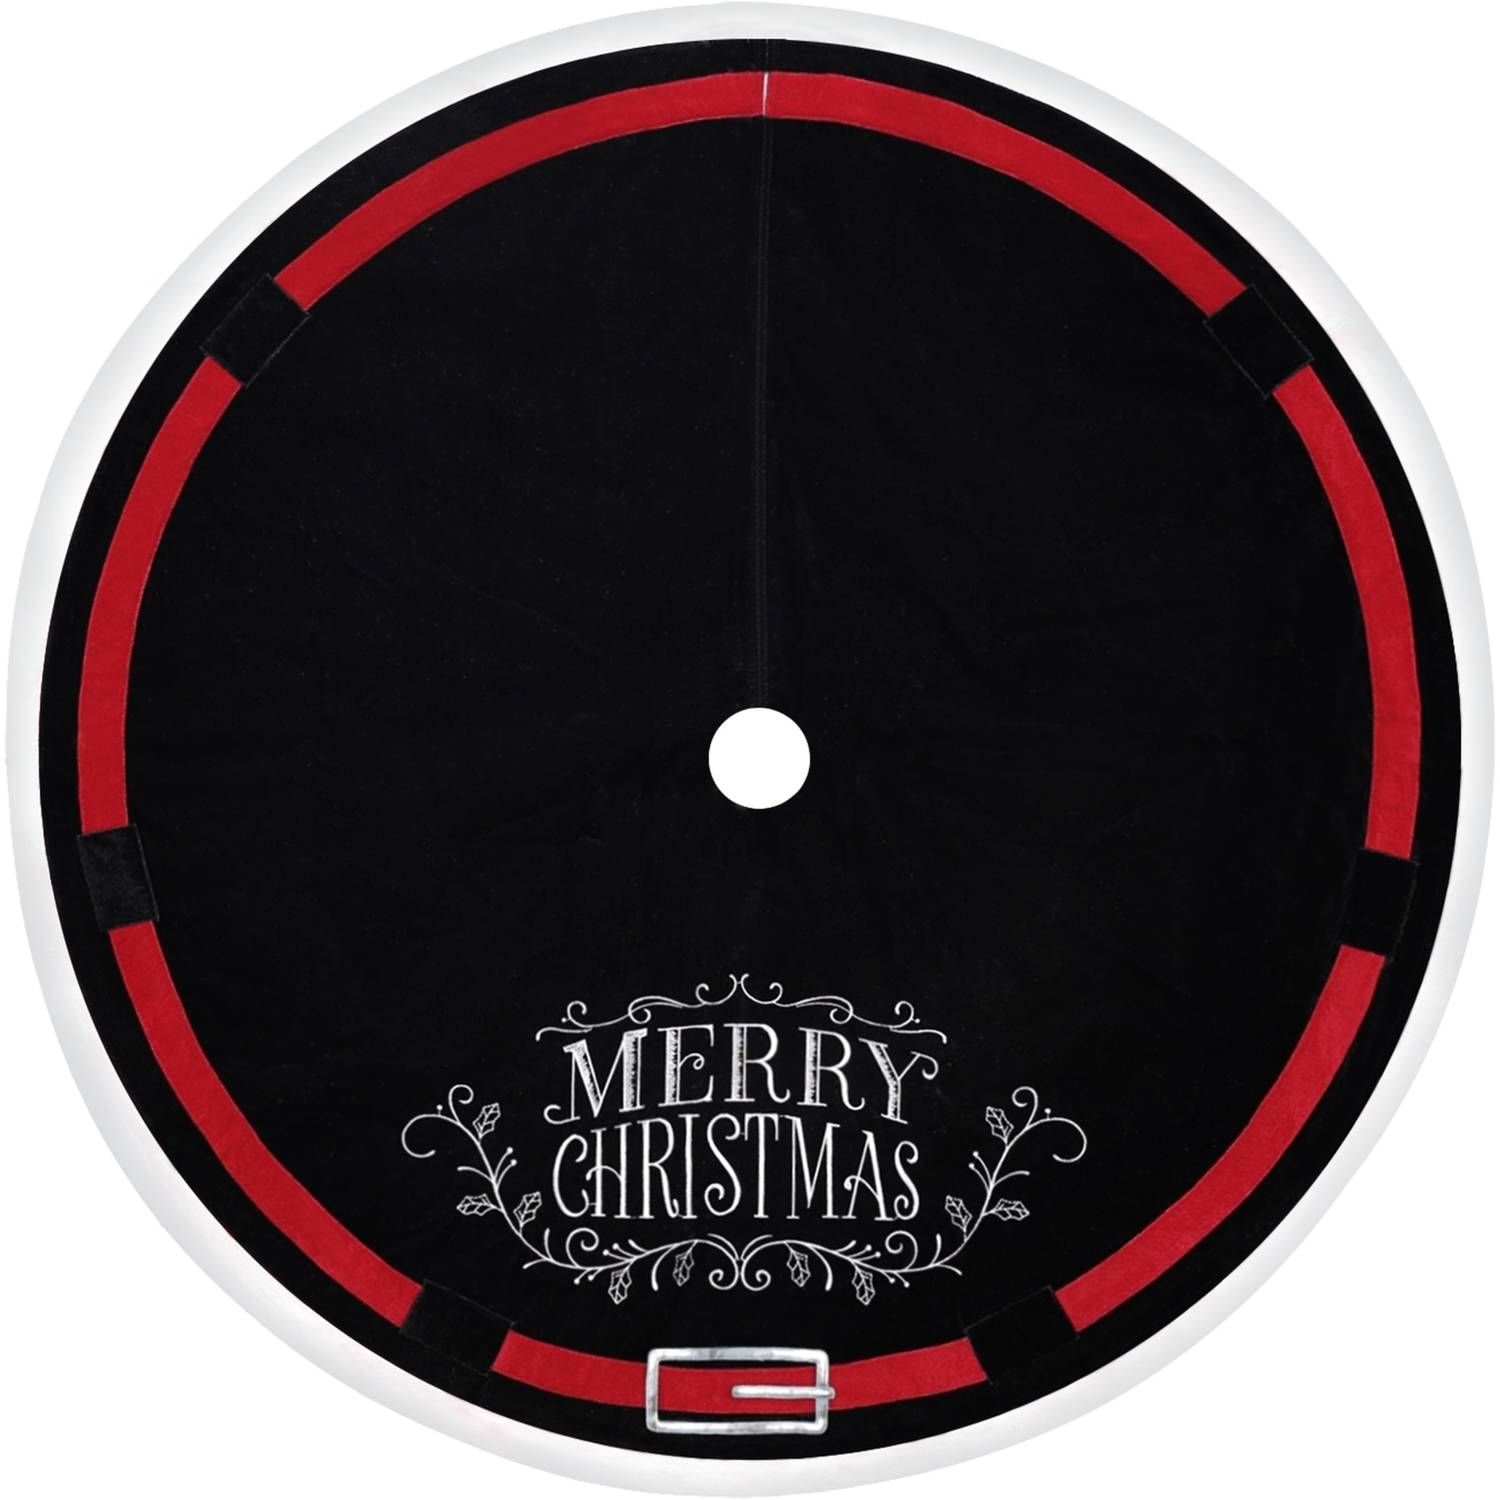 holiday time christmas decor 48 velvet tree skirt with embroidered merry christmas and santa belt buckle black with red belt and silver buckle - Black Christmas Tree Skirt